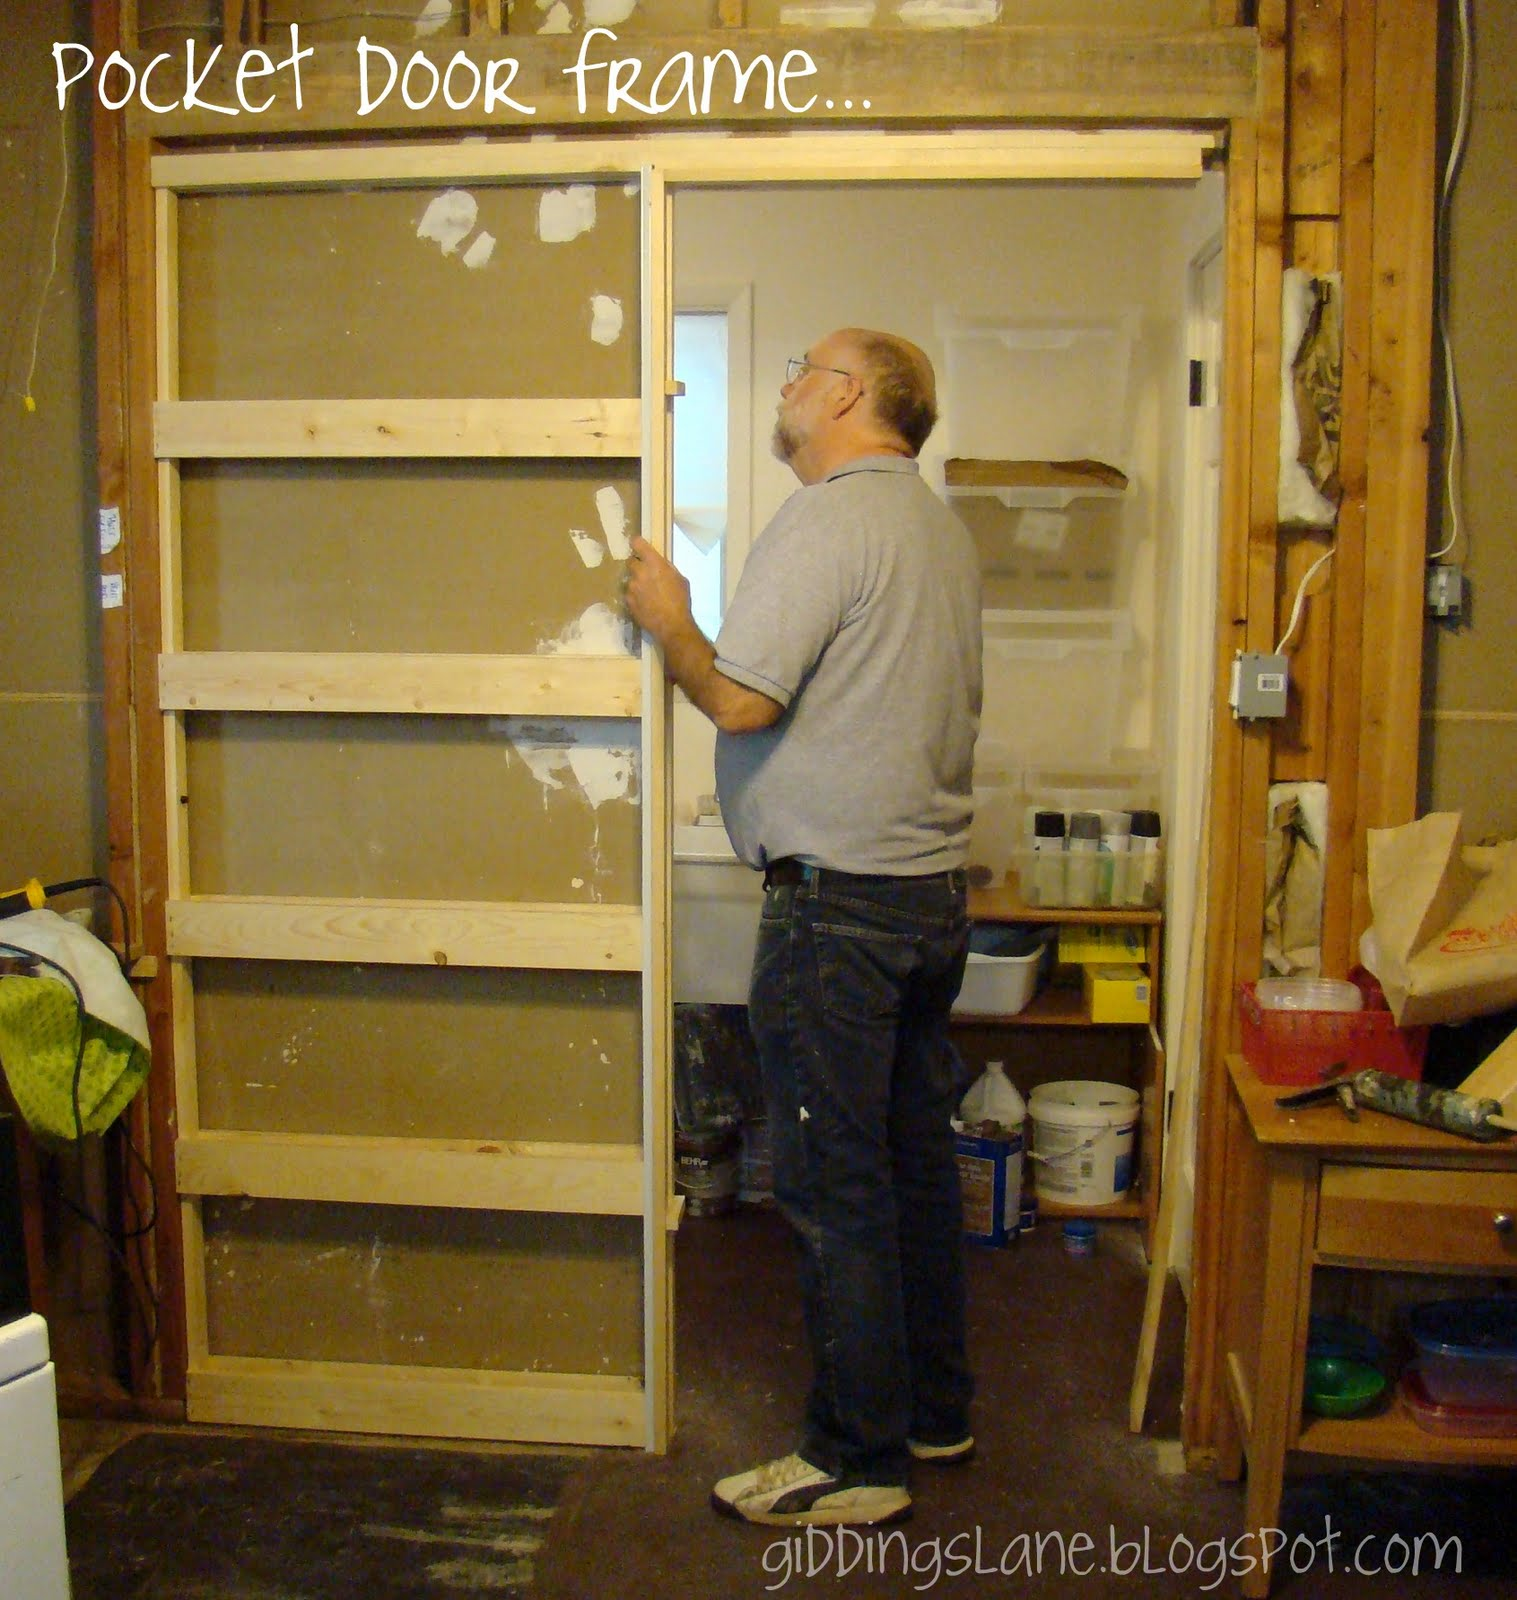 Door Frame: What Is A Pocket Door Frame